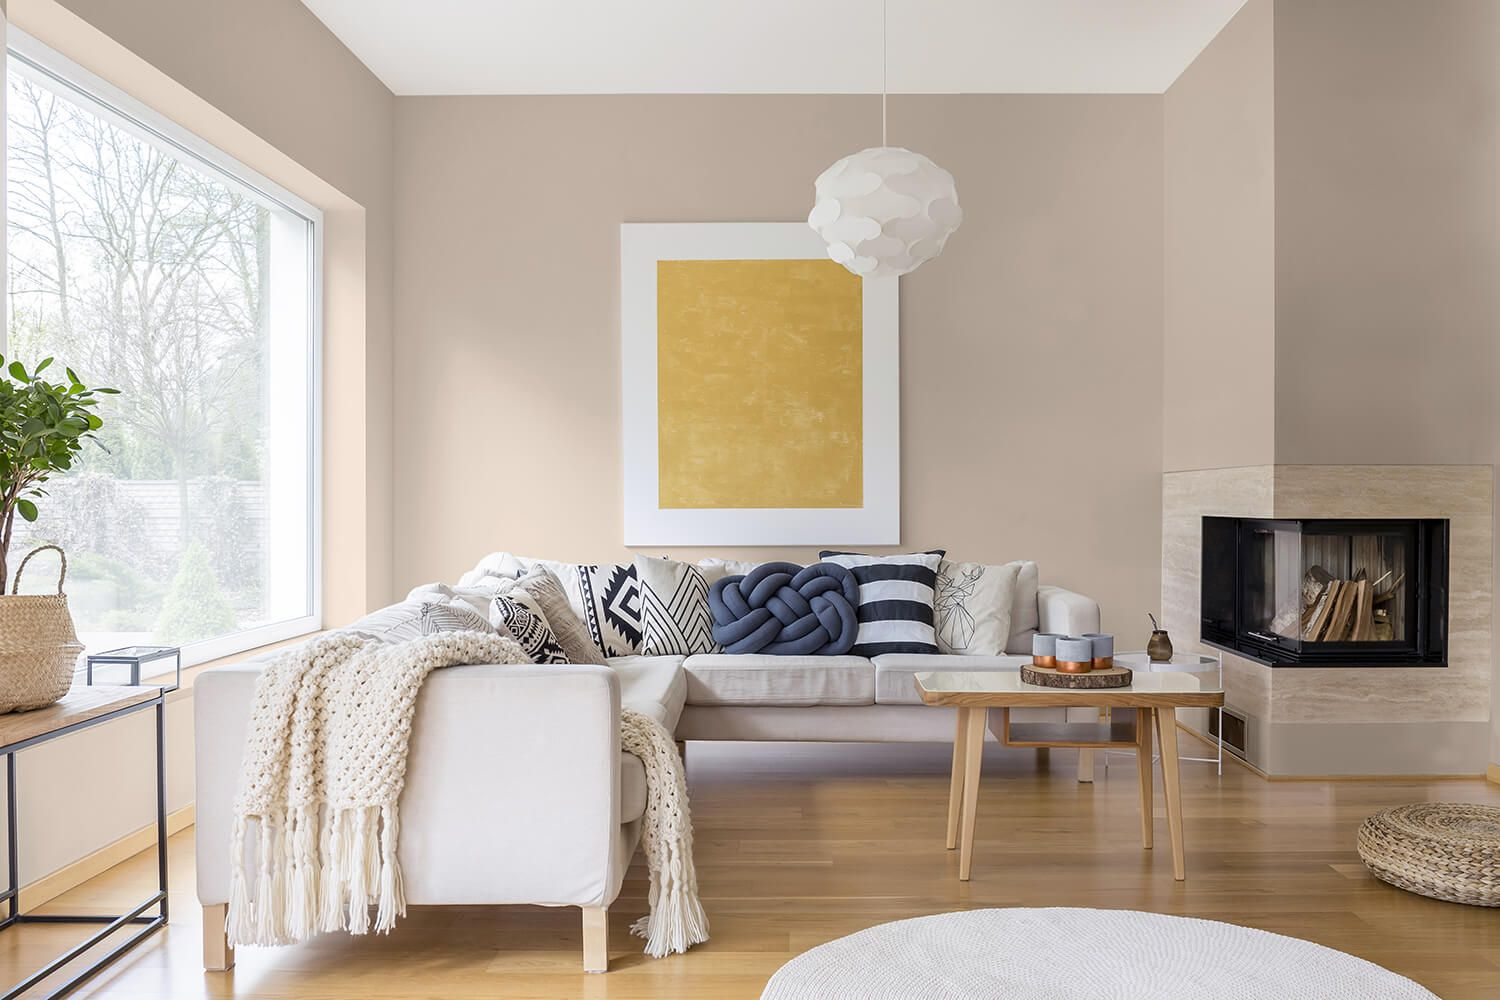 2020 2021 Colour Trends Cool Calm Collected Right Here Paint Colors For Living Room Trending Decor Living Room Color